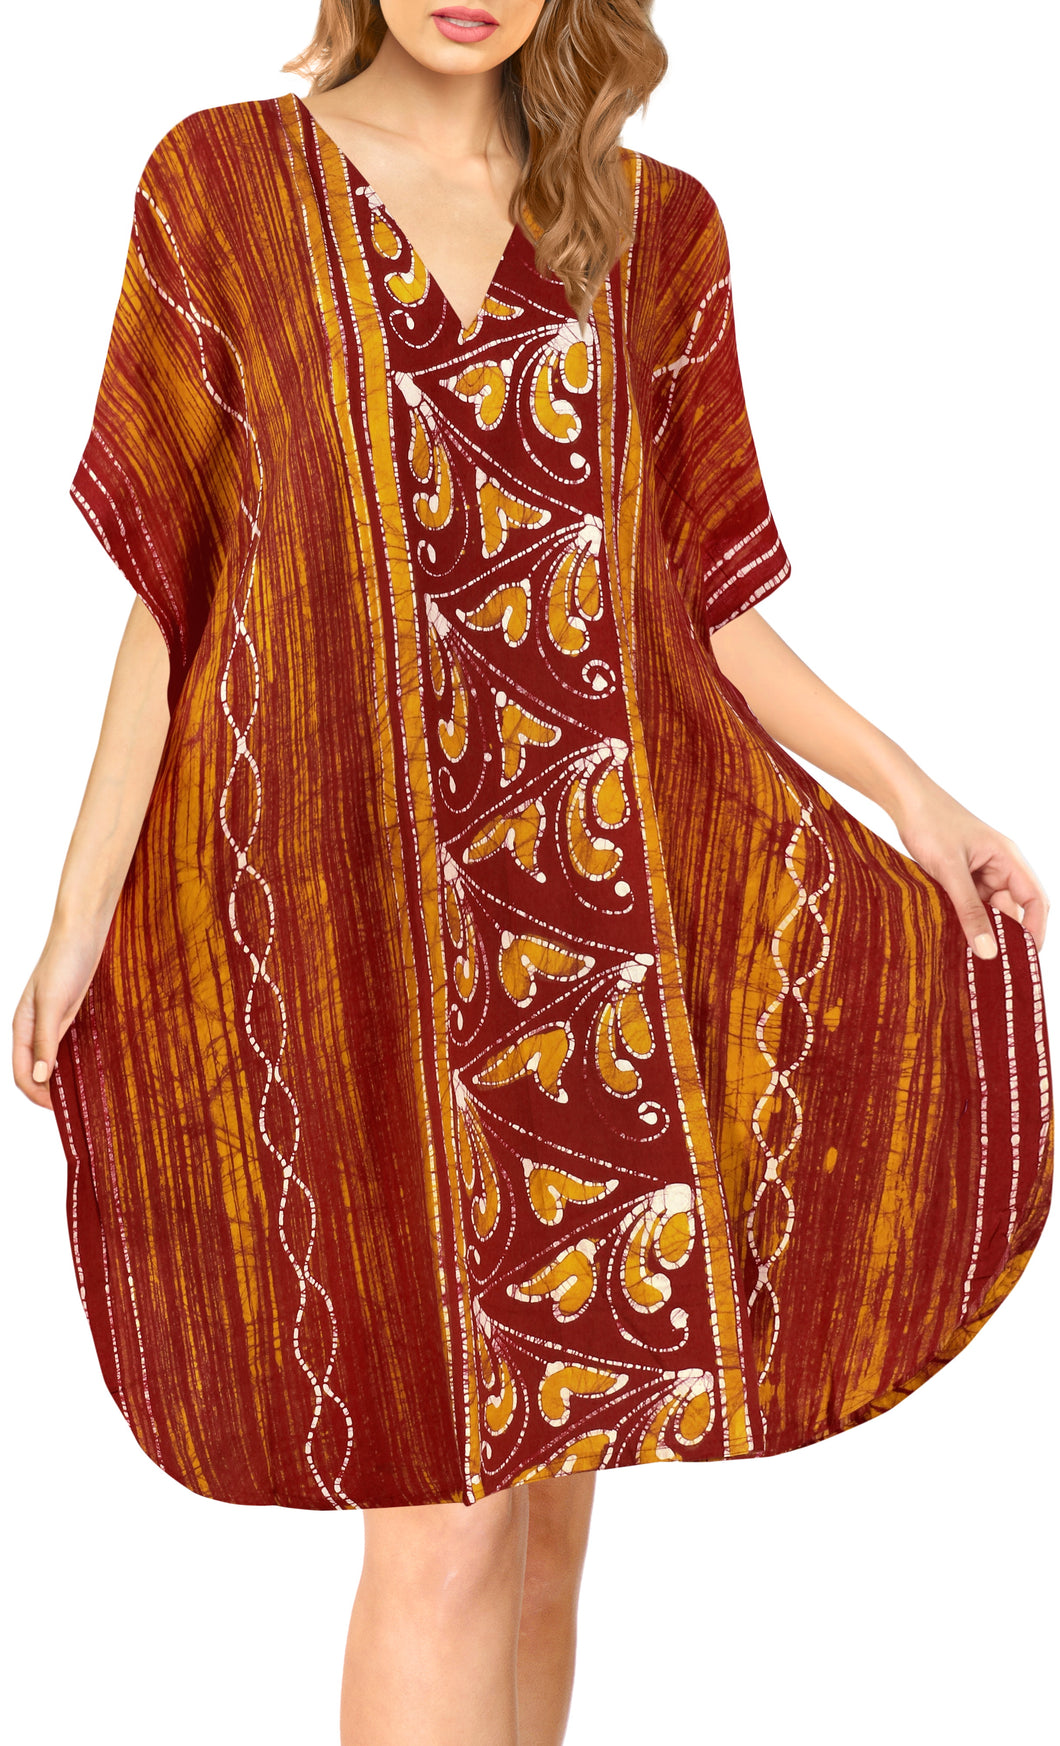 la-leela-cotton-batik-short-caftan-vacation-top-OSFM 14-18W [L- 2X]-Pumpkin Orange_A641